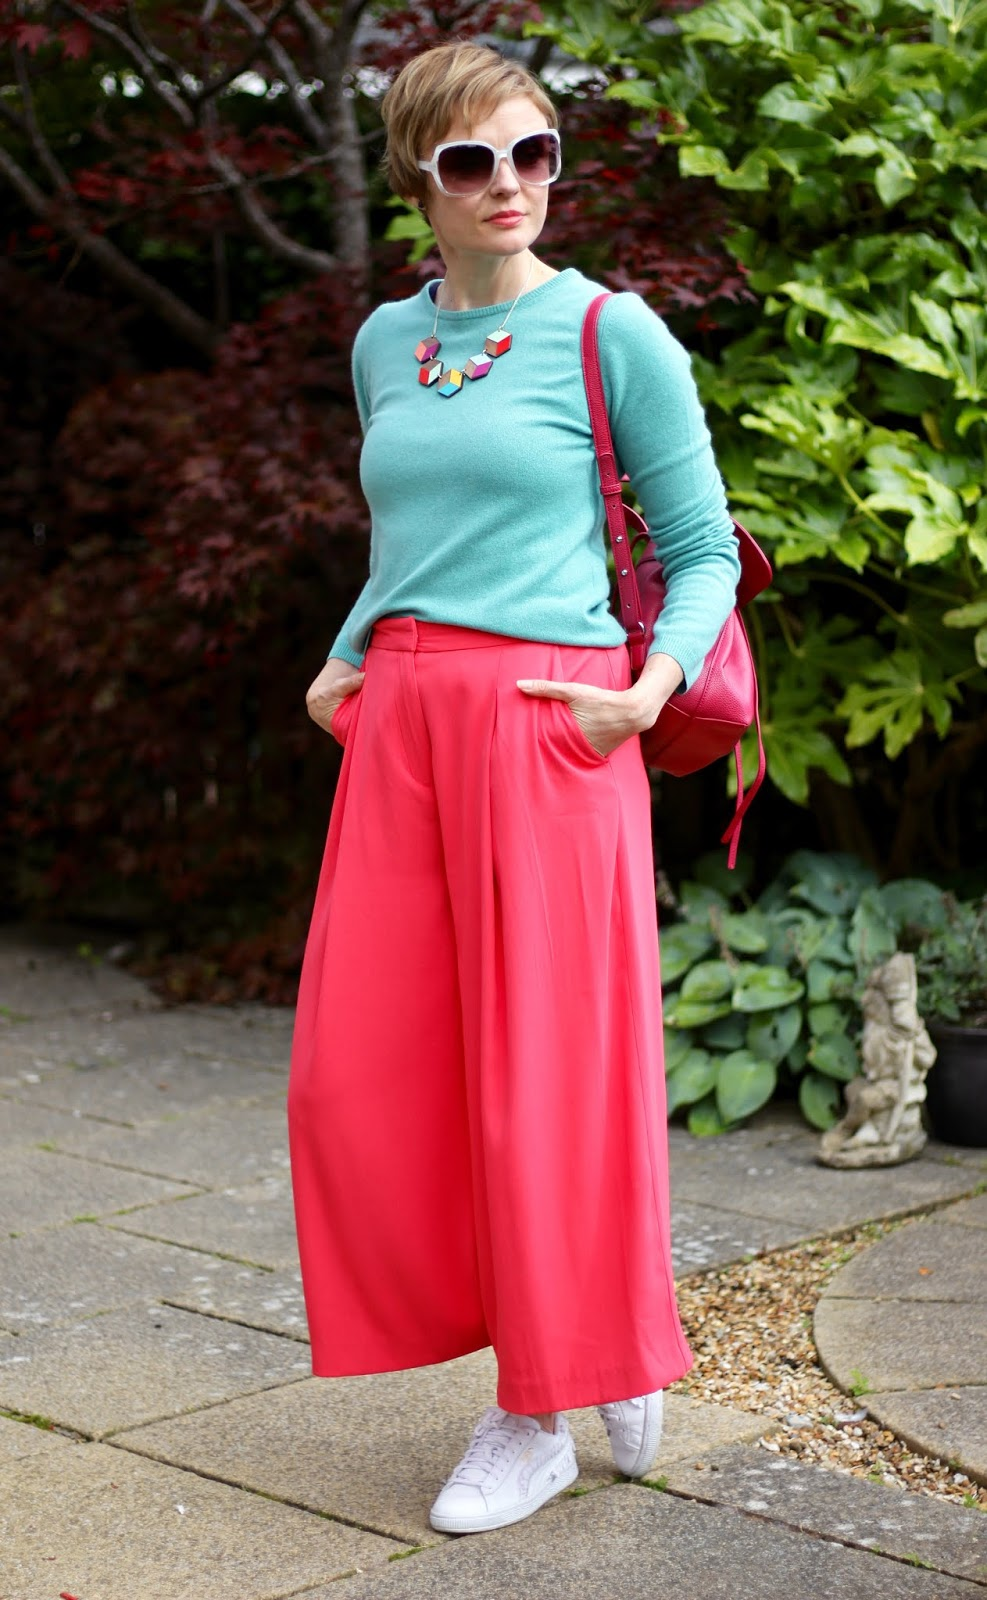 Styling baggy neon pink culottes and an aqua cashmere knit | Fake Fabulous